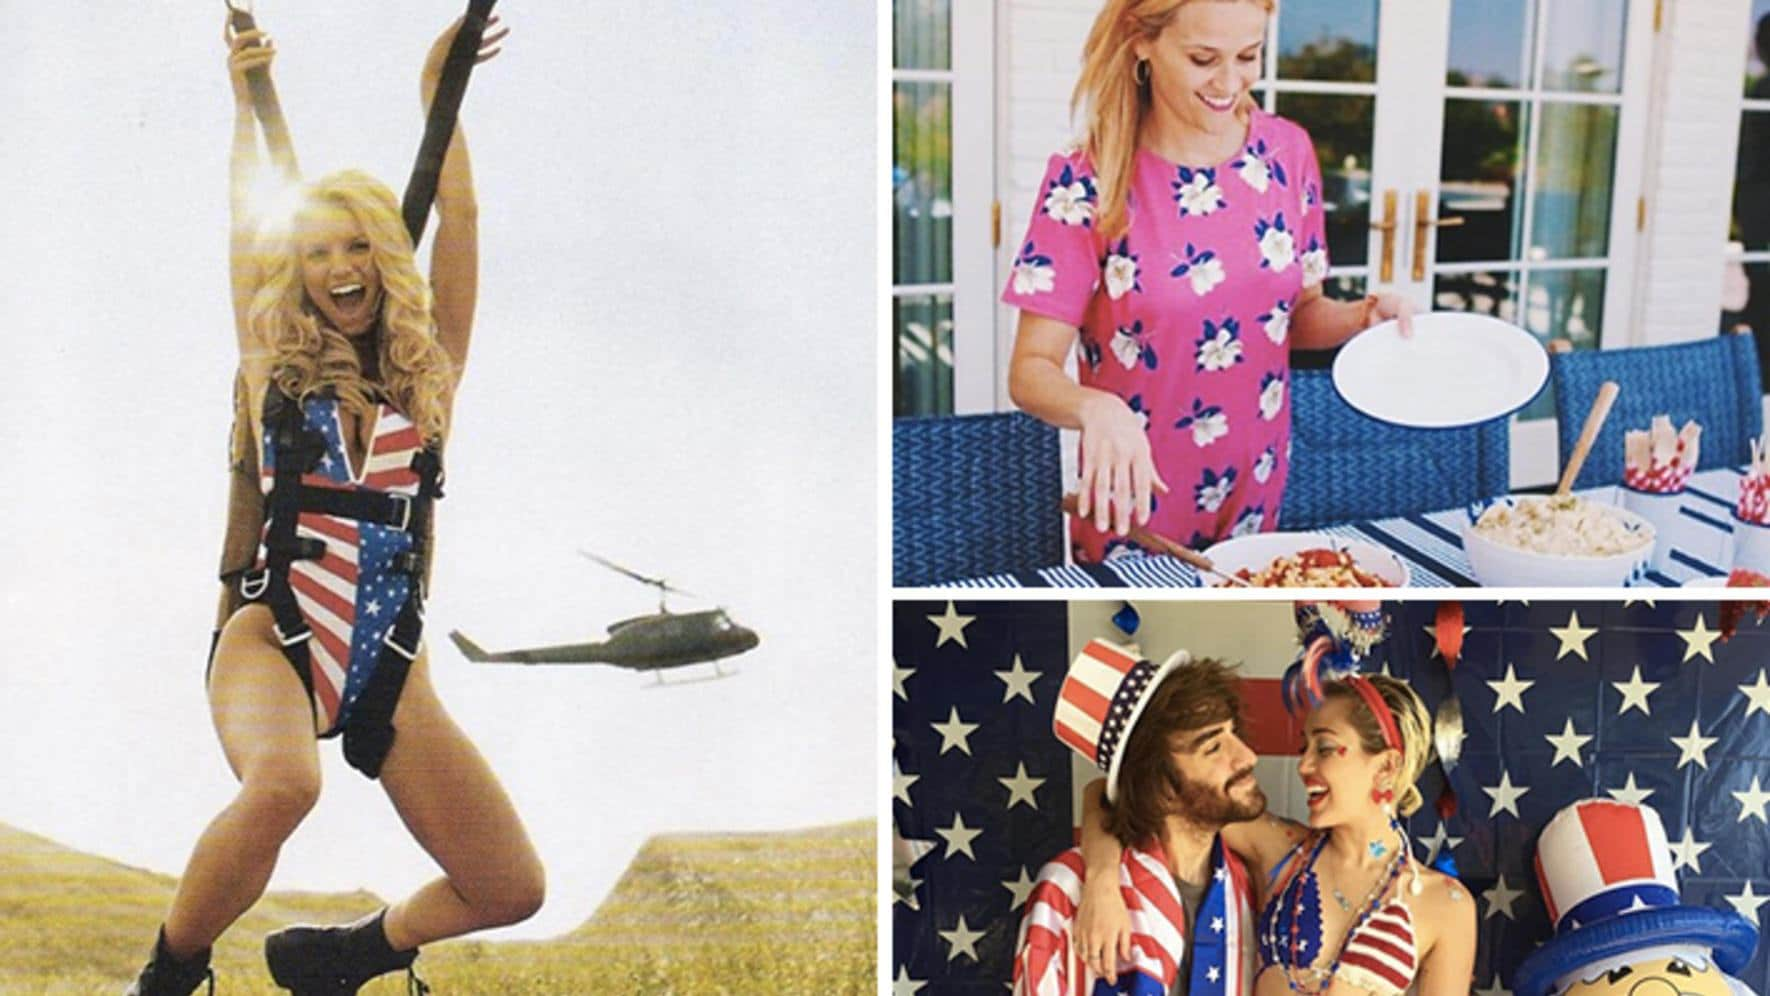 Independence Day USA 2015: Stars, Fotos, Instagram